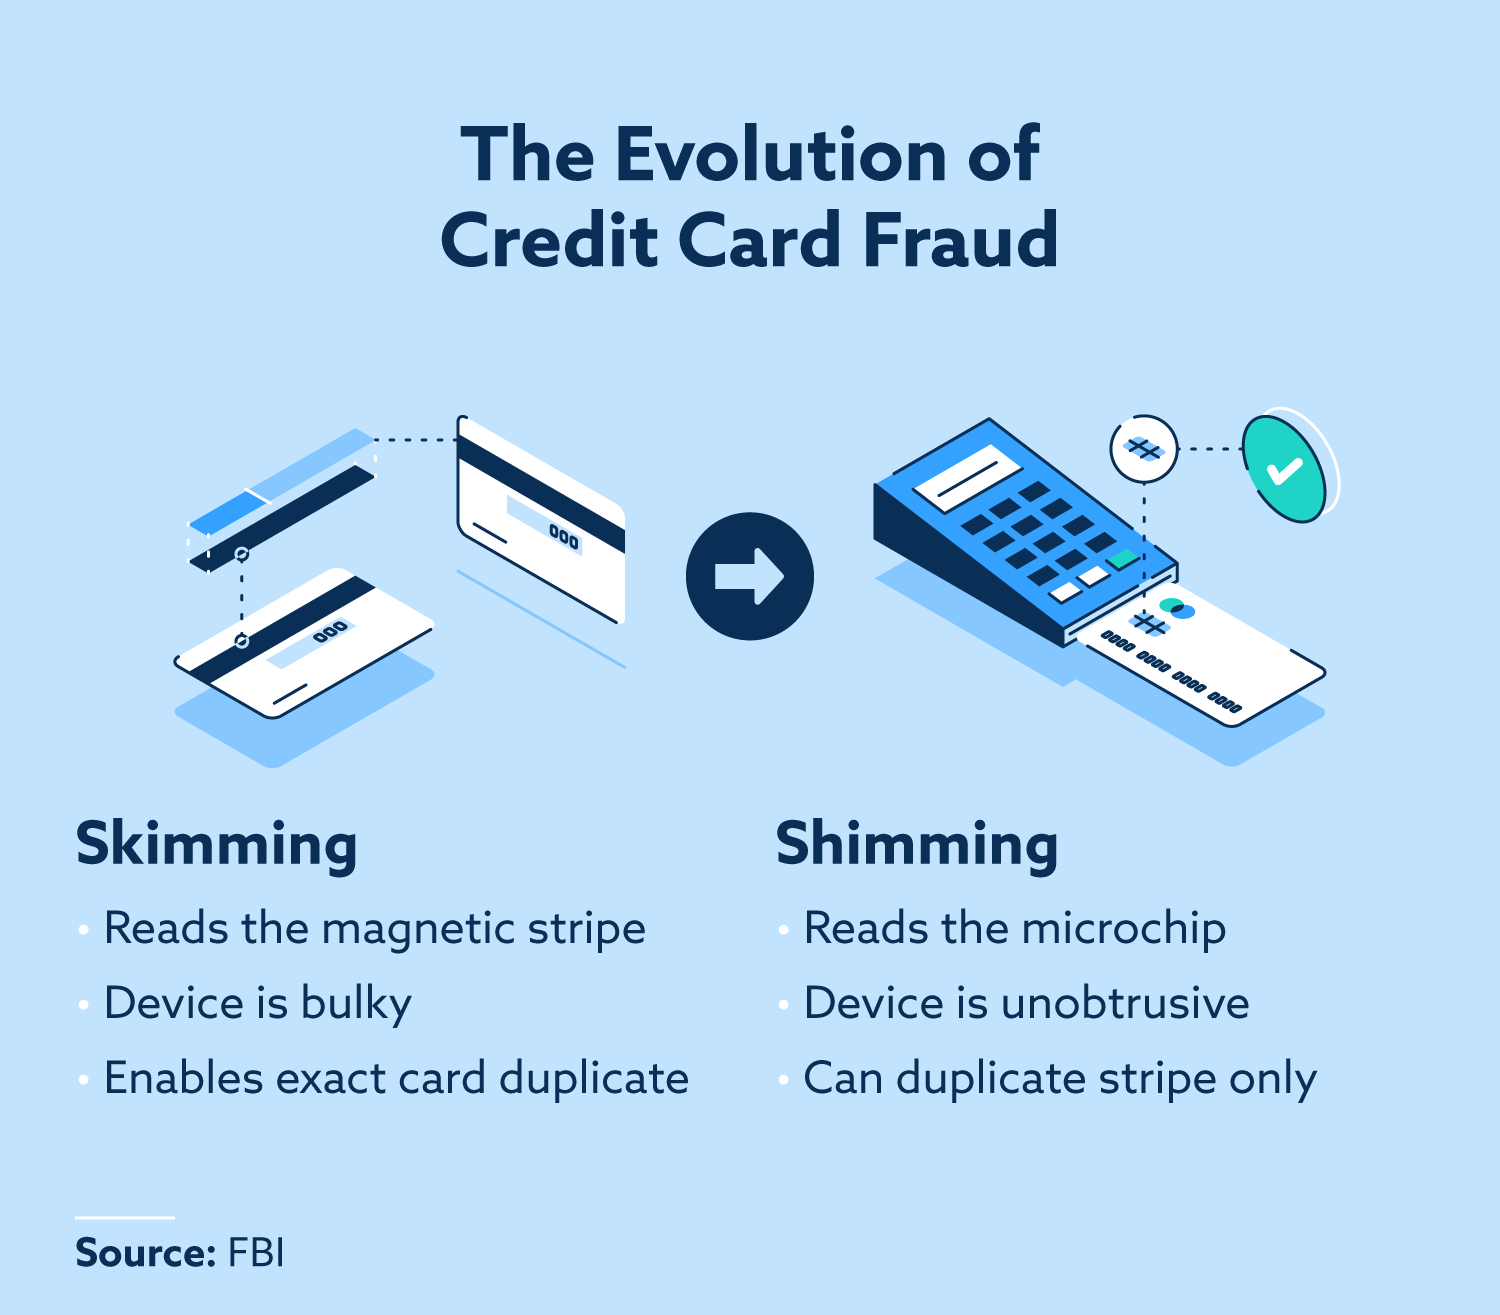 The evolution of credit card fraud. Skimming: Reads the magnetic stripe, device is bulky, enables exact card duplicate. Shimming: reads the microchip, device is unobtrusive, can duplicate stripe only.